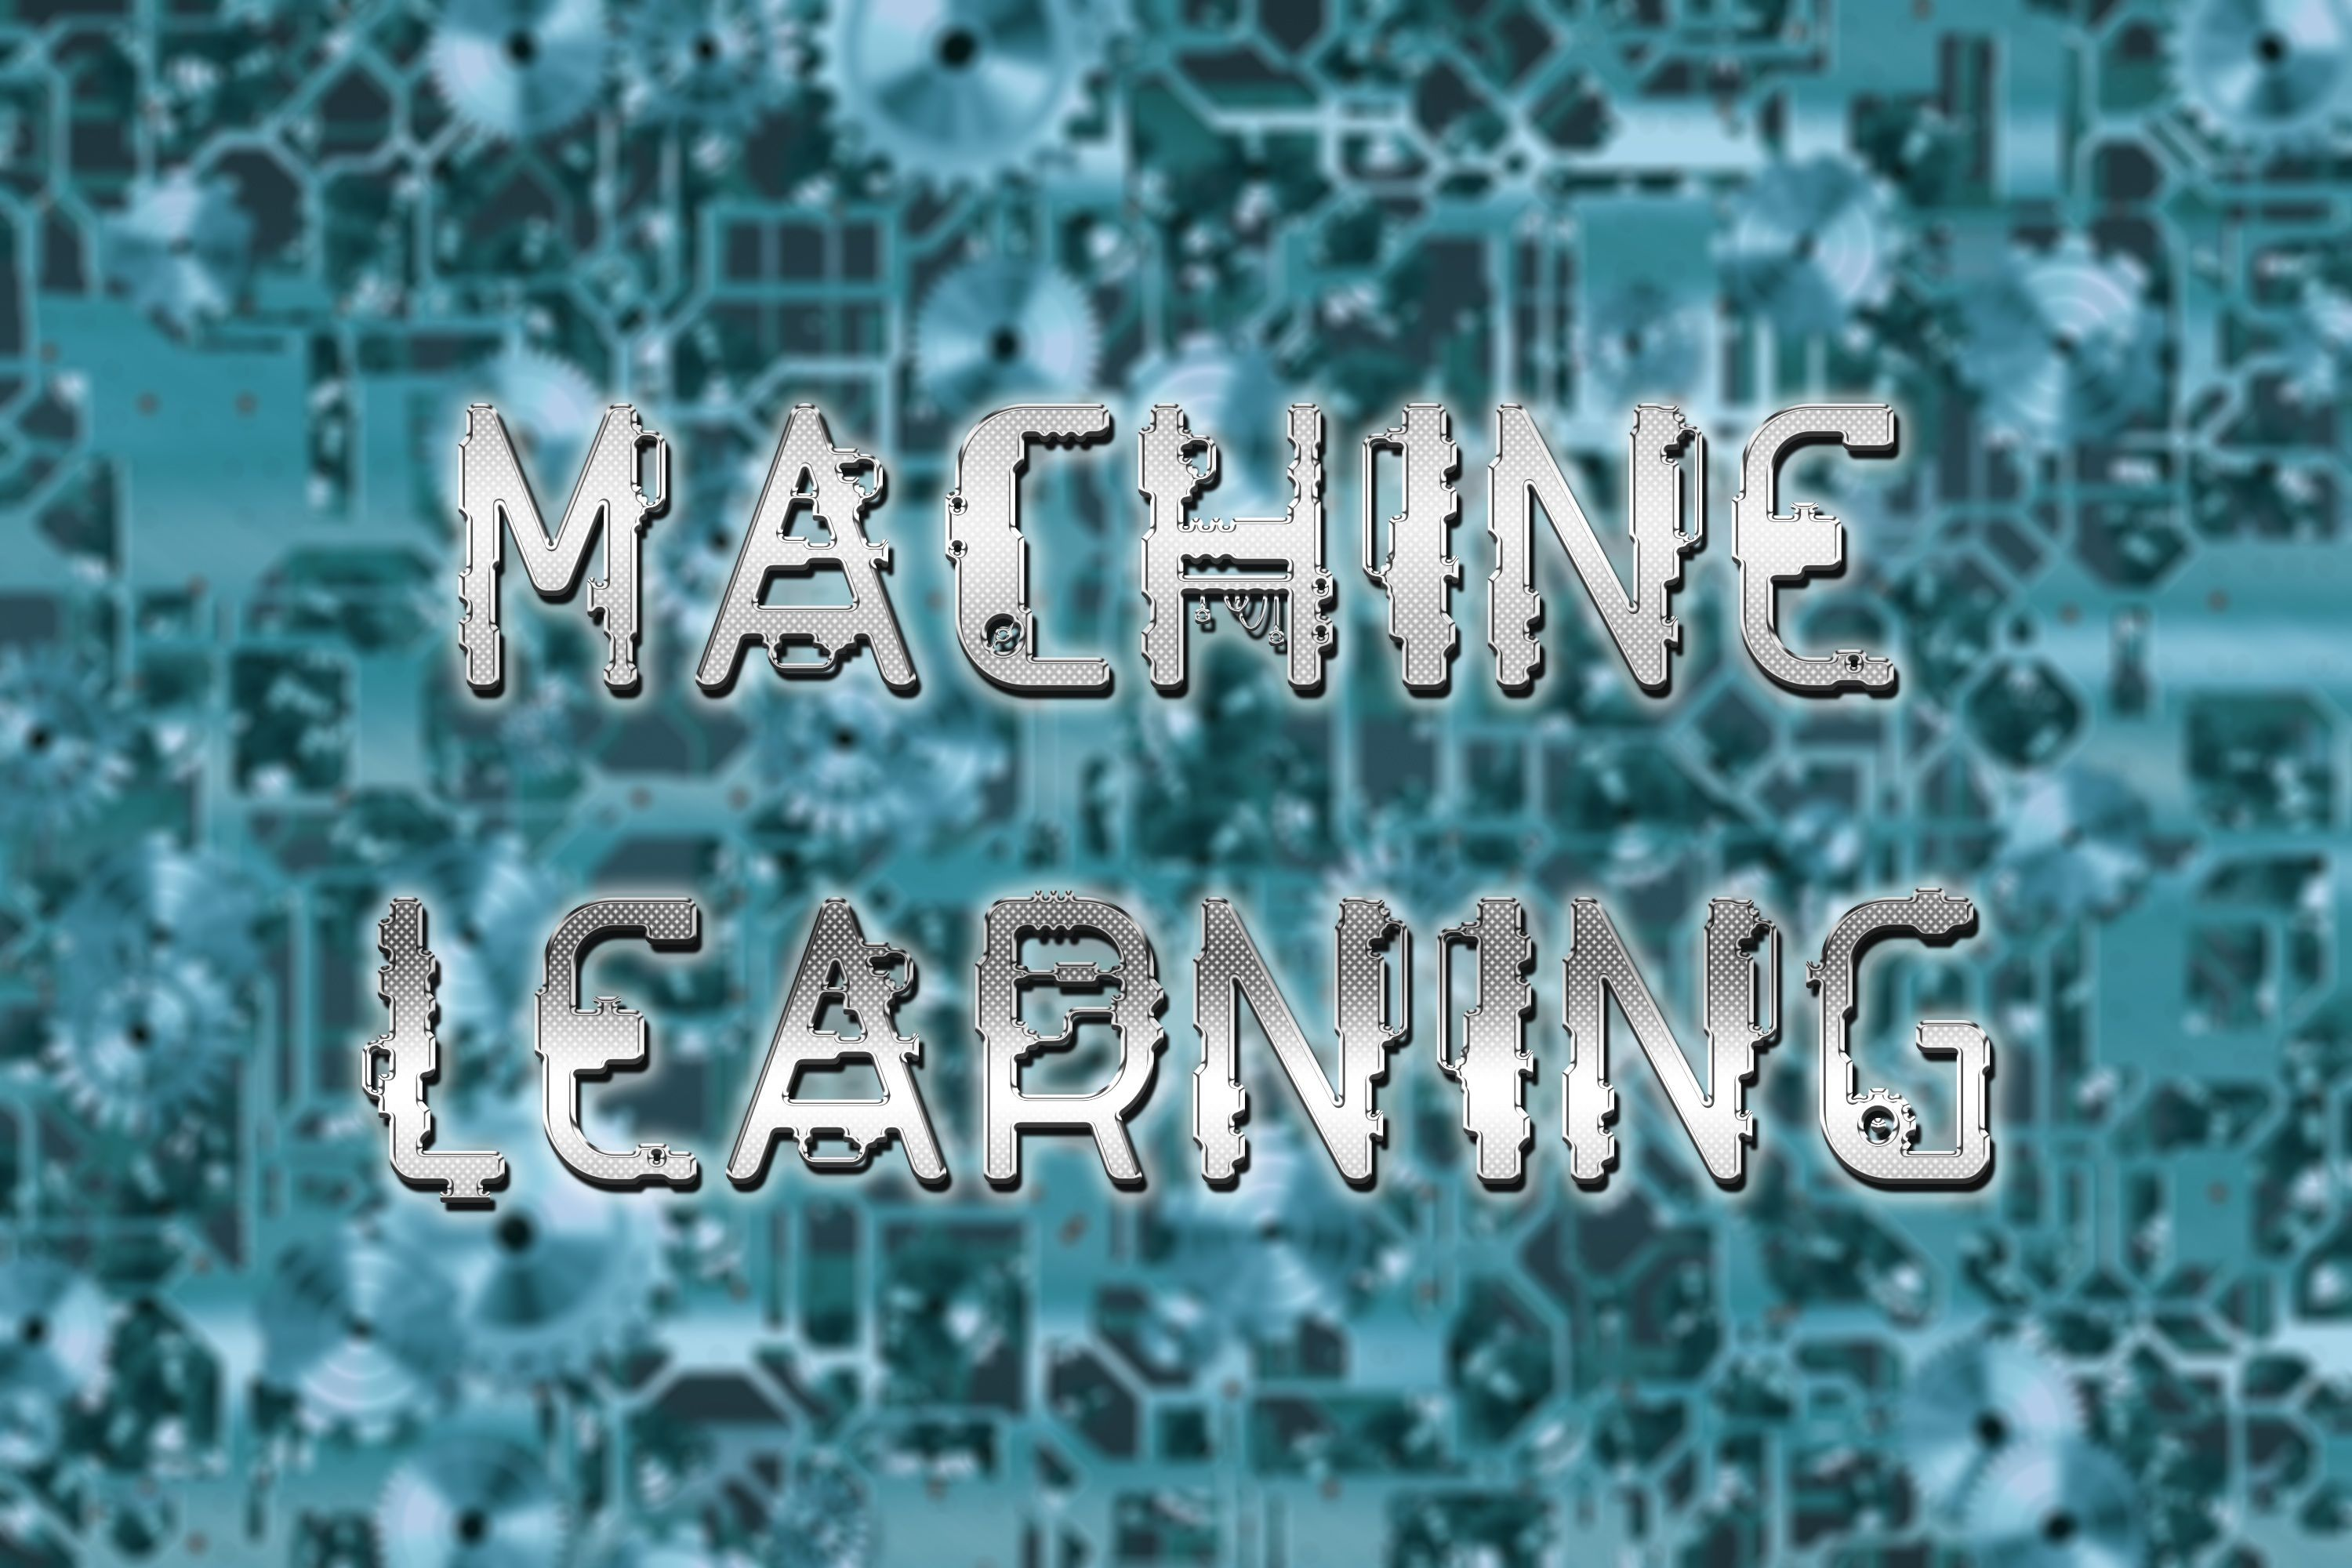 /machine-learning-consulting-does-your-business-really-need-it-yhf3uco feature image